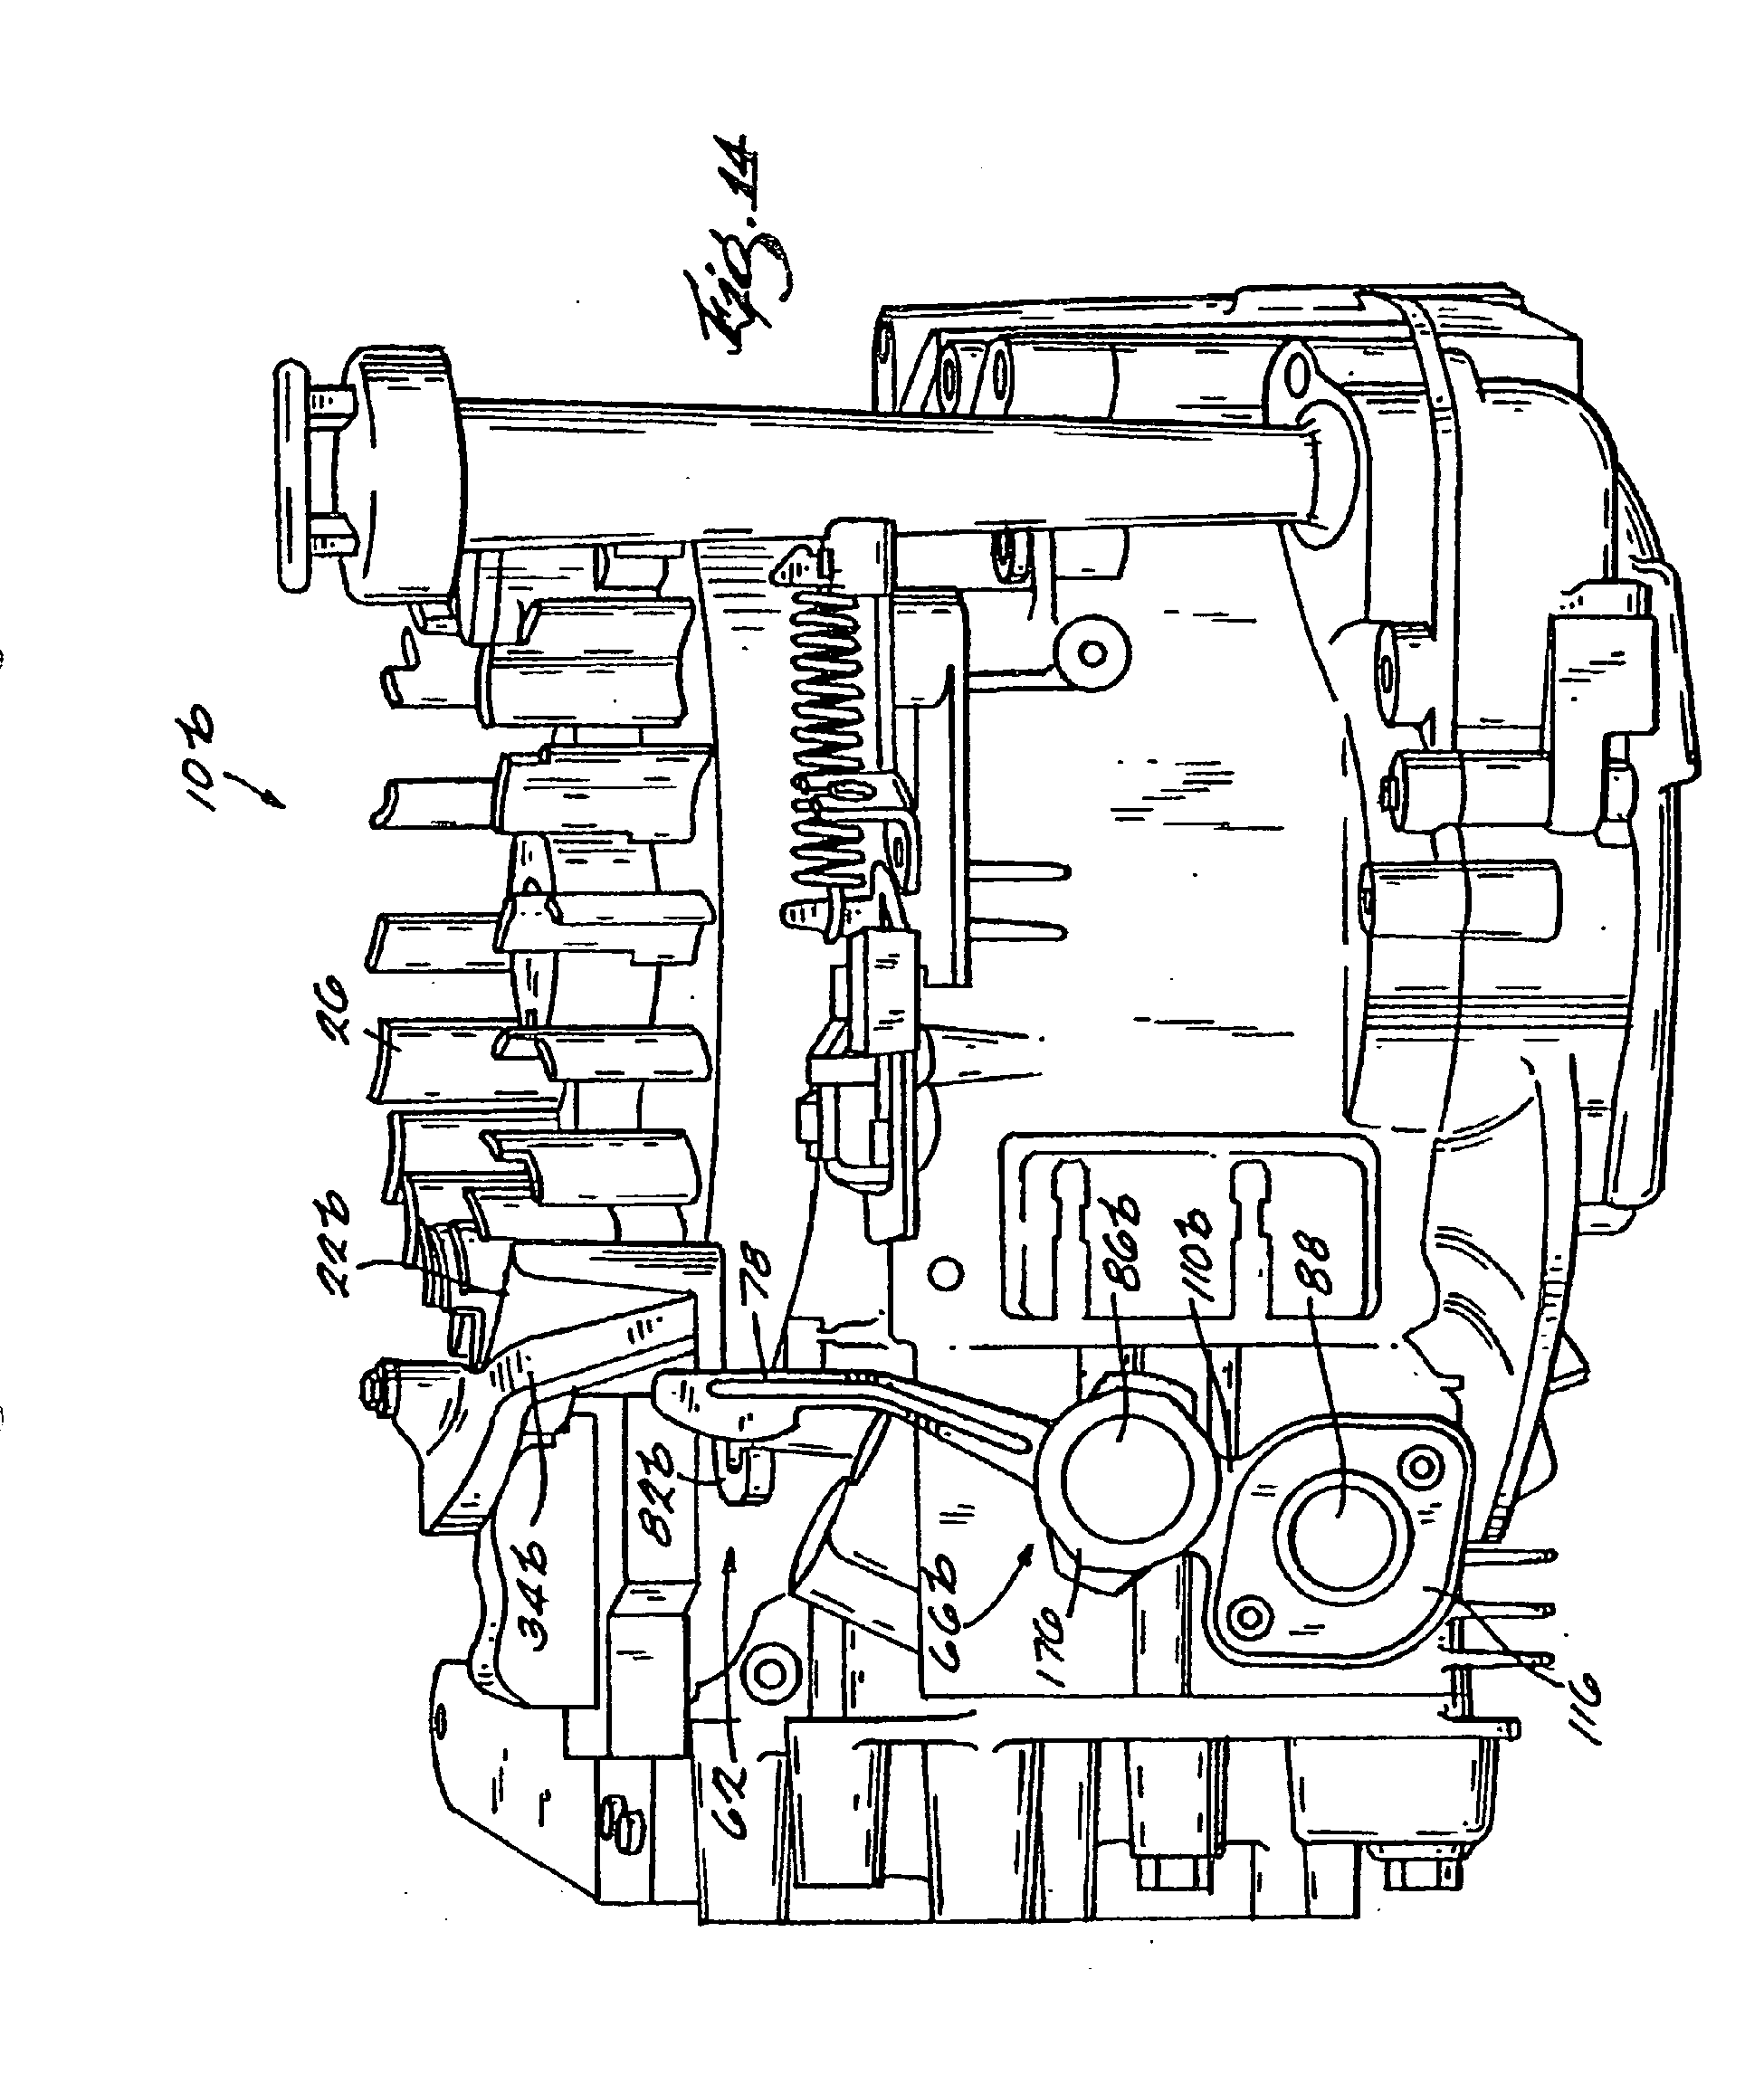 patent ep2261493b1 - automatic choke for an engine